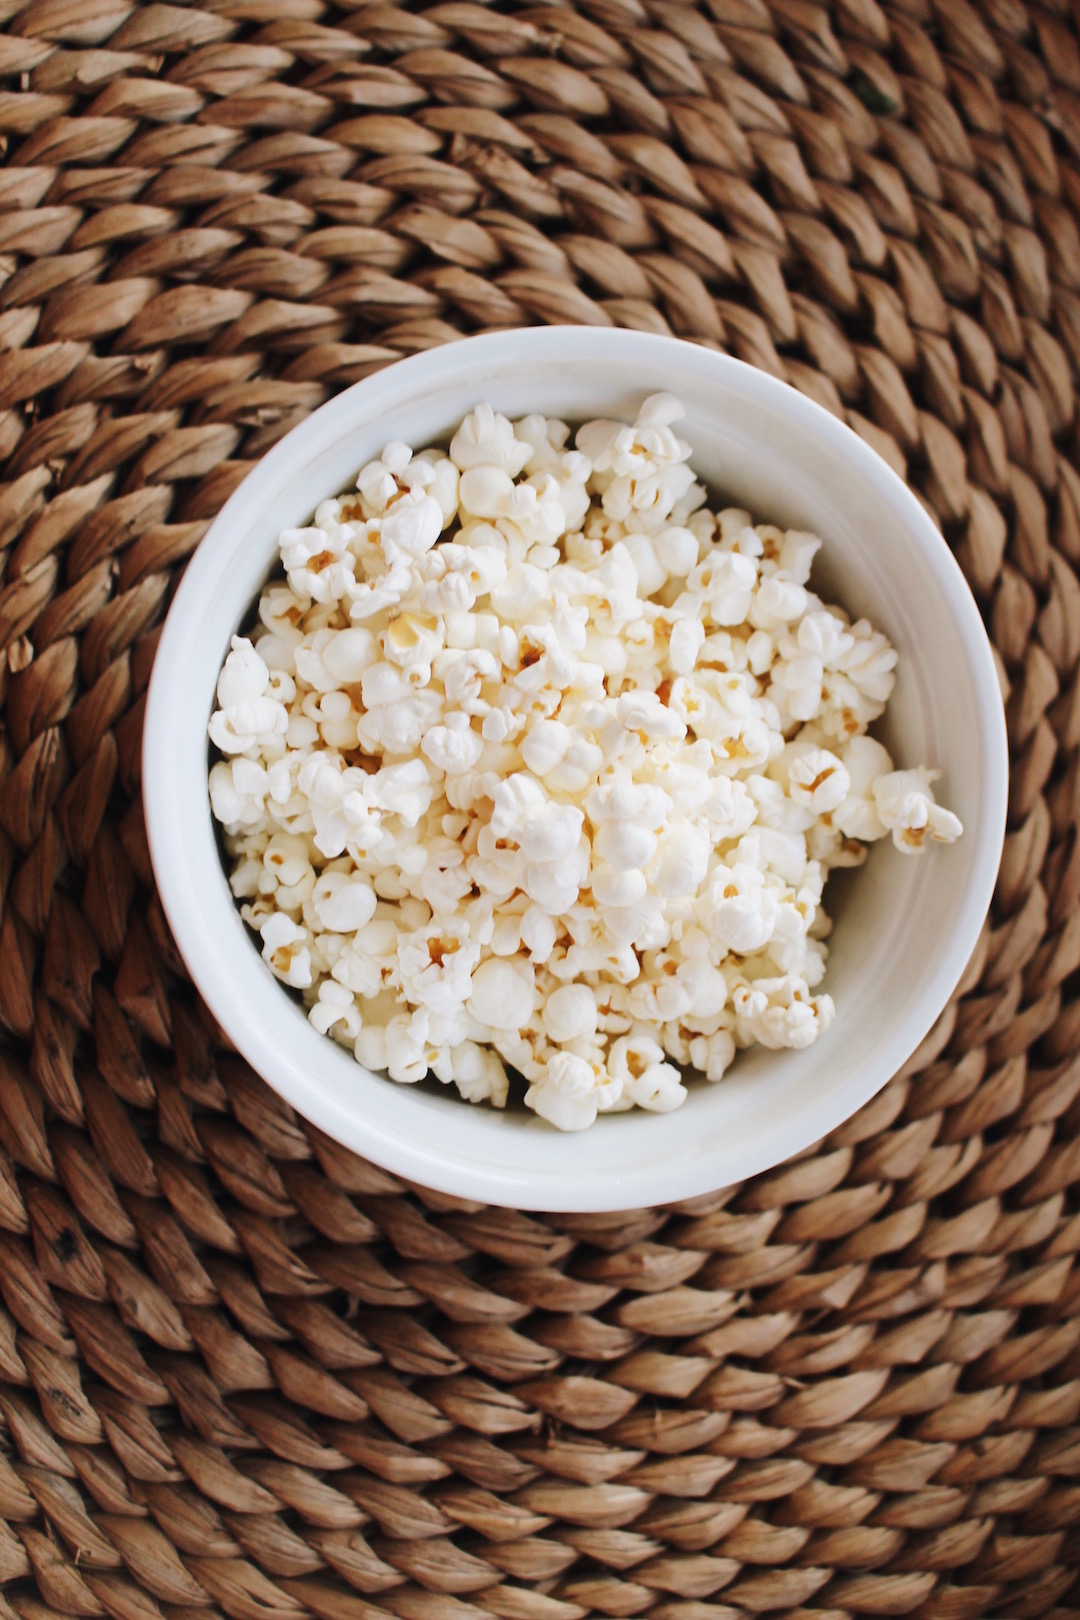 """POPCORN - Such a light, yet satisfying snack. Trader Joe's makes great """"Heirloom Popcorn"""" with avocado oil & pink salt, or Lesser Evil makes this wonderful avocado/coconut oil popcorn. Popcorn is a great source of fiber and antioxidants and avocado oil/ghee both contain healthy fat that your body needs."""